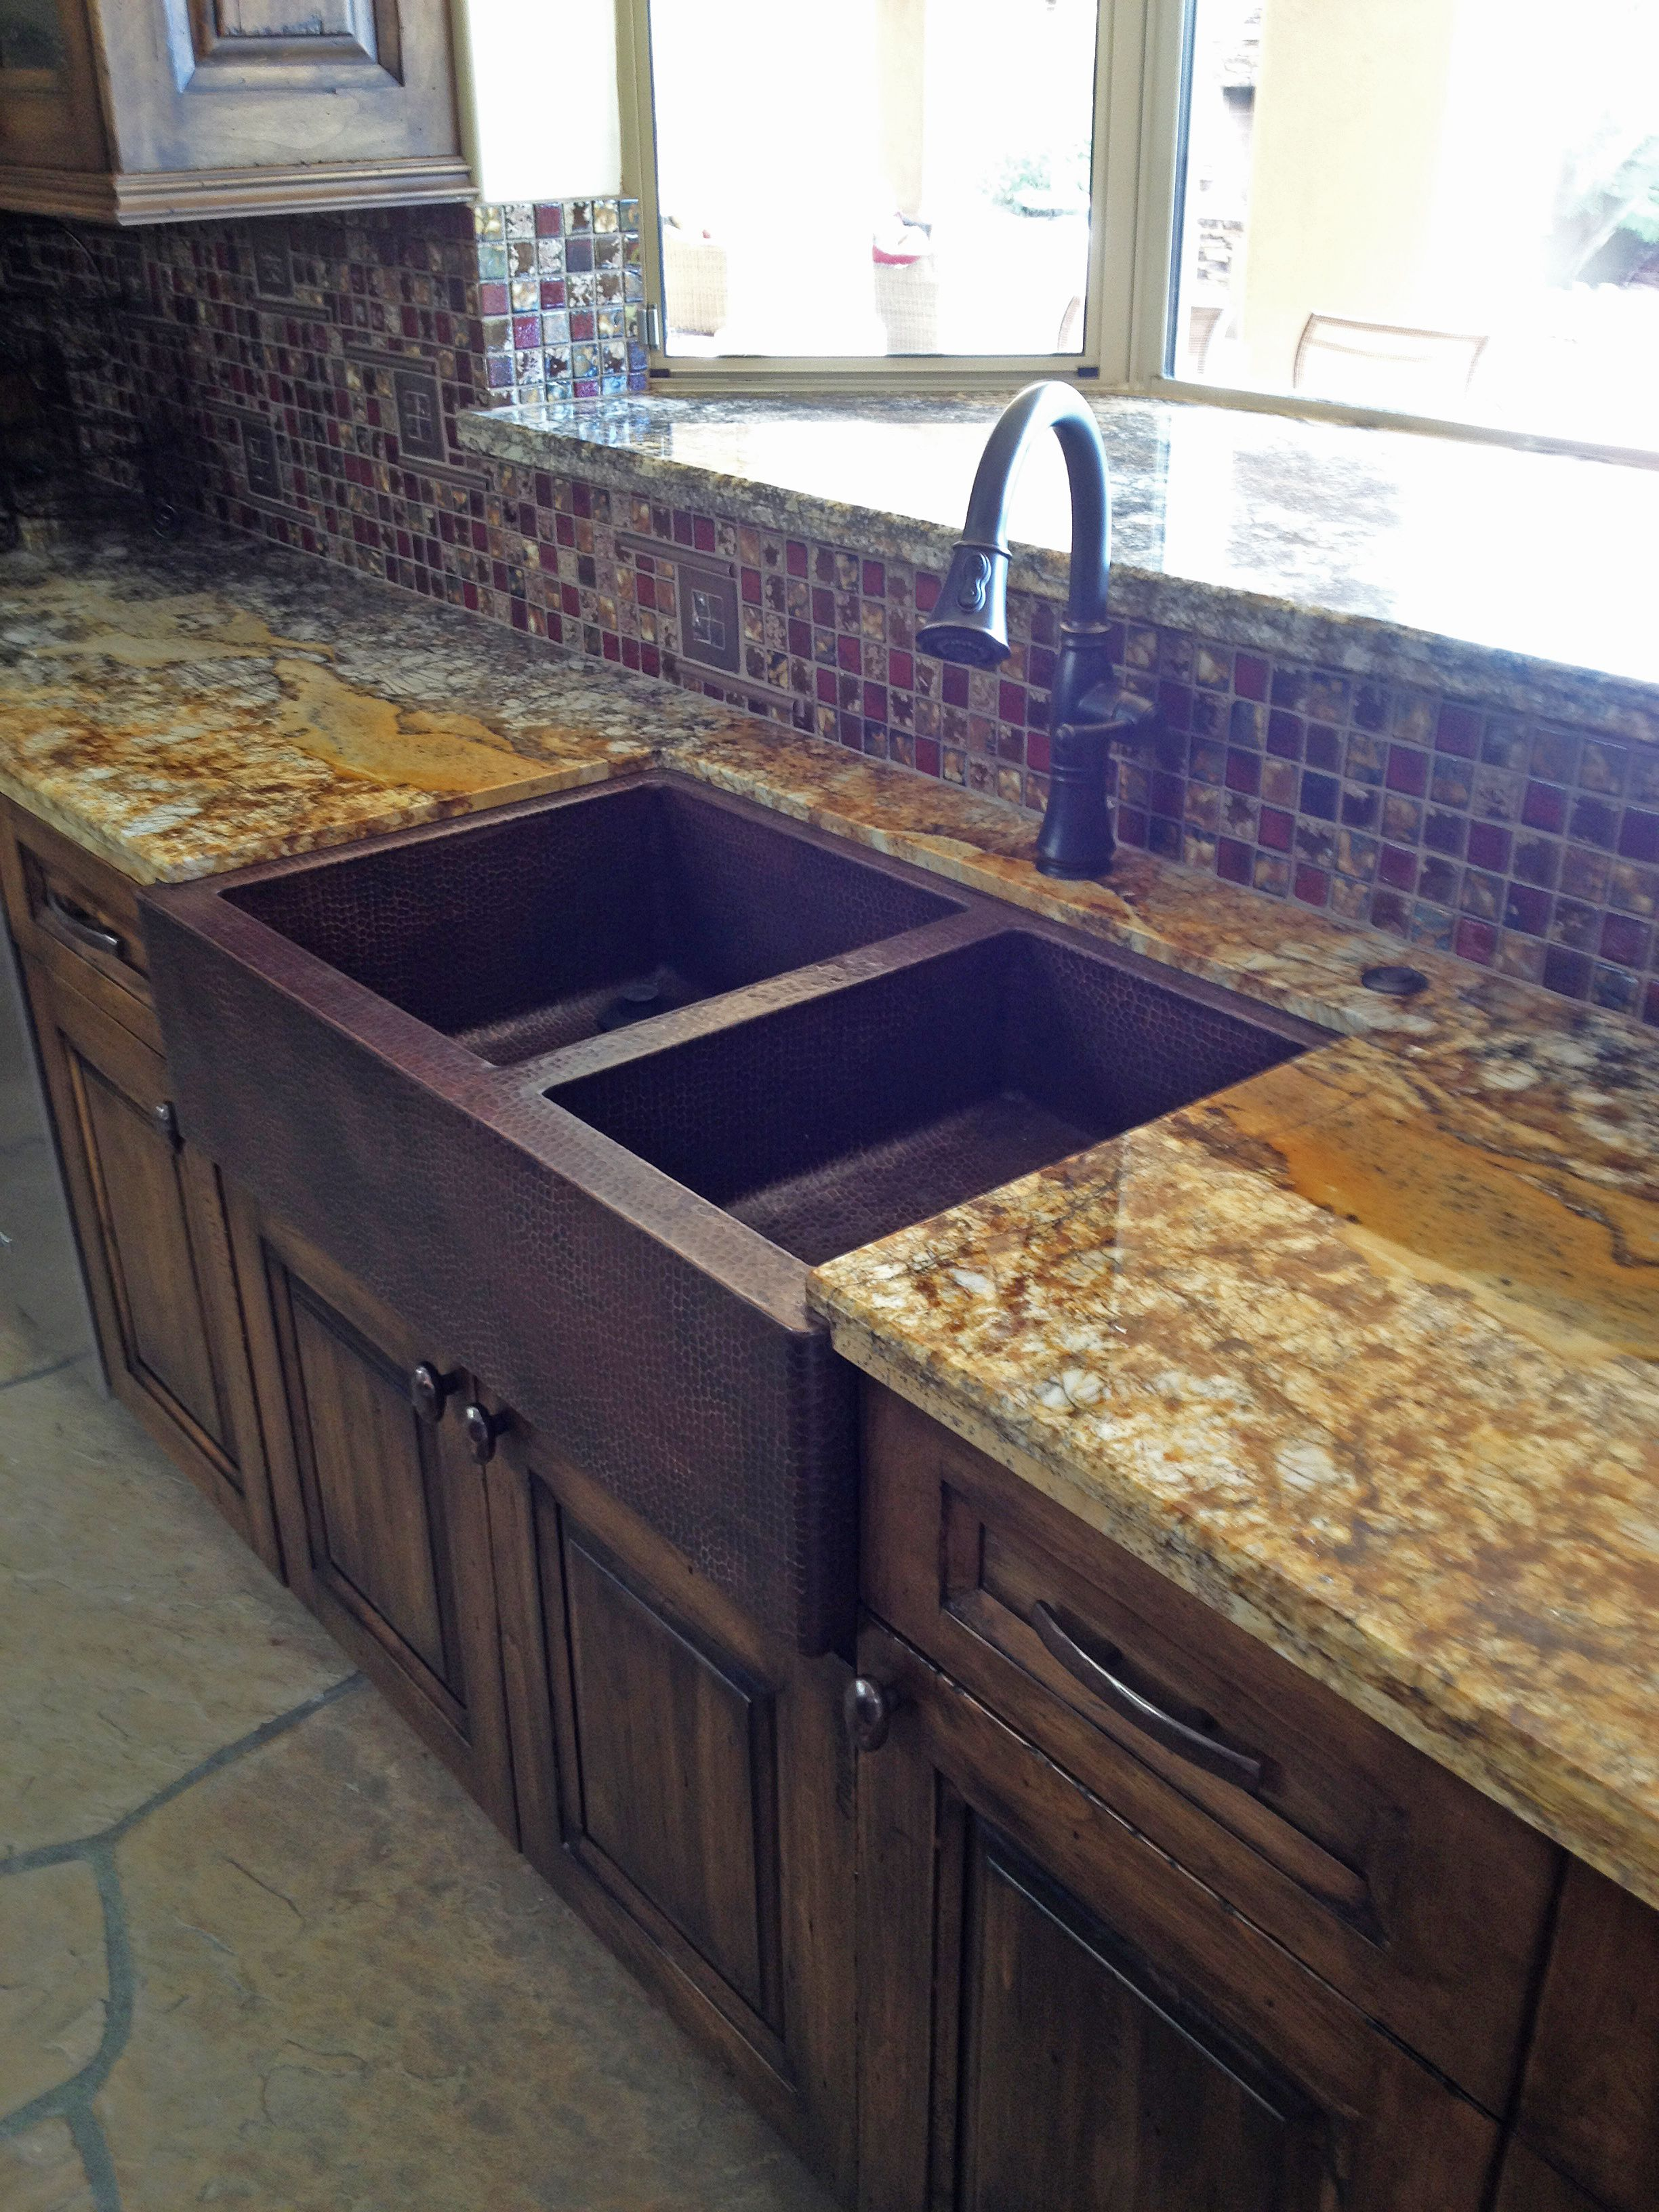 picture of 36   large double well copper farmhouse sink   60 40 picture of 36   large double well copper farmhouse sink   60 40      rh   pinterest com